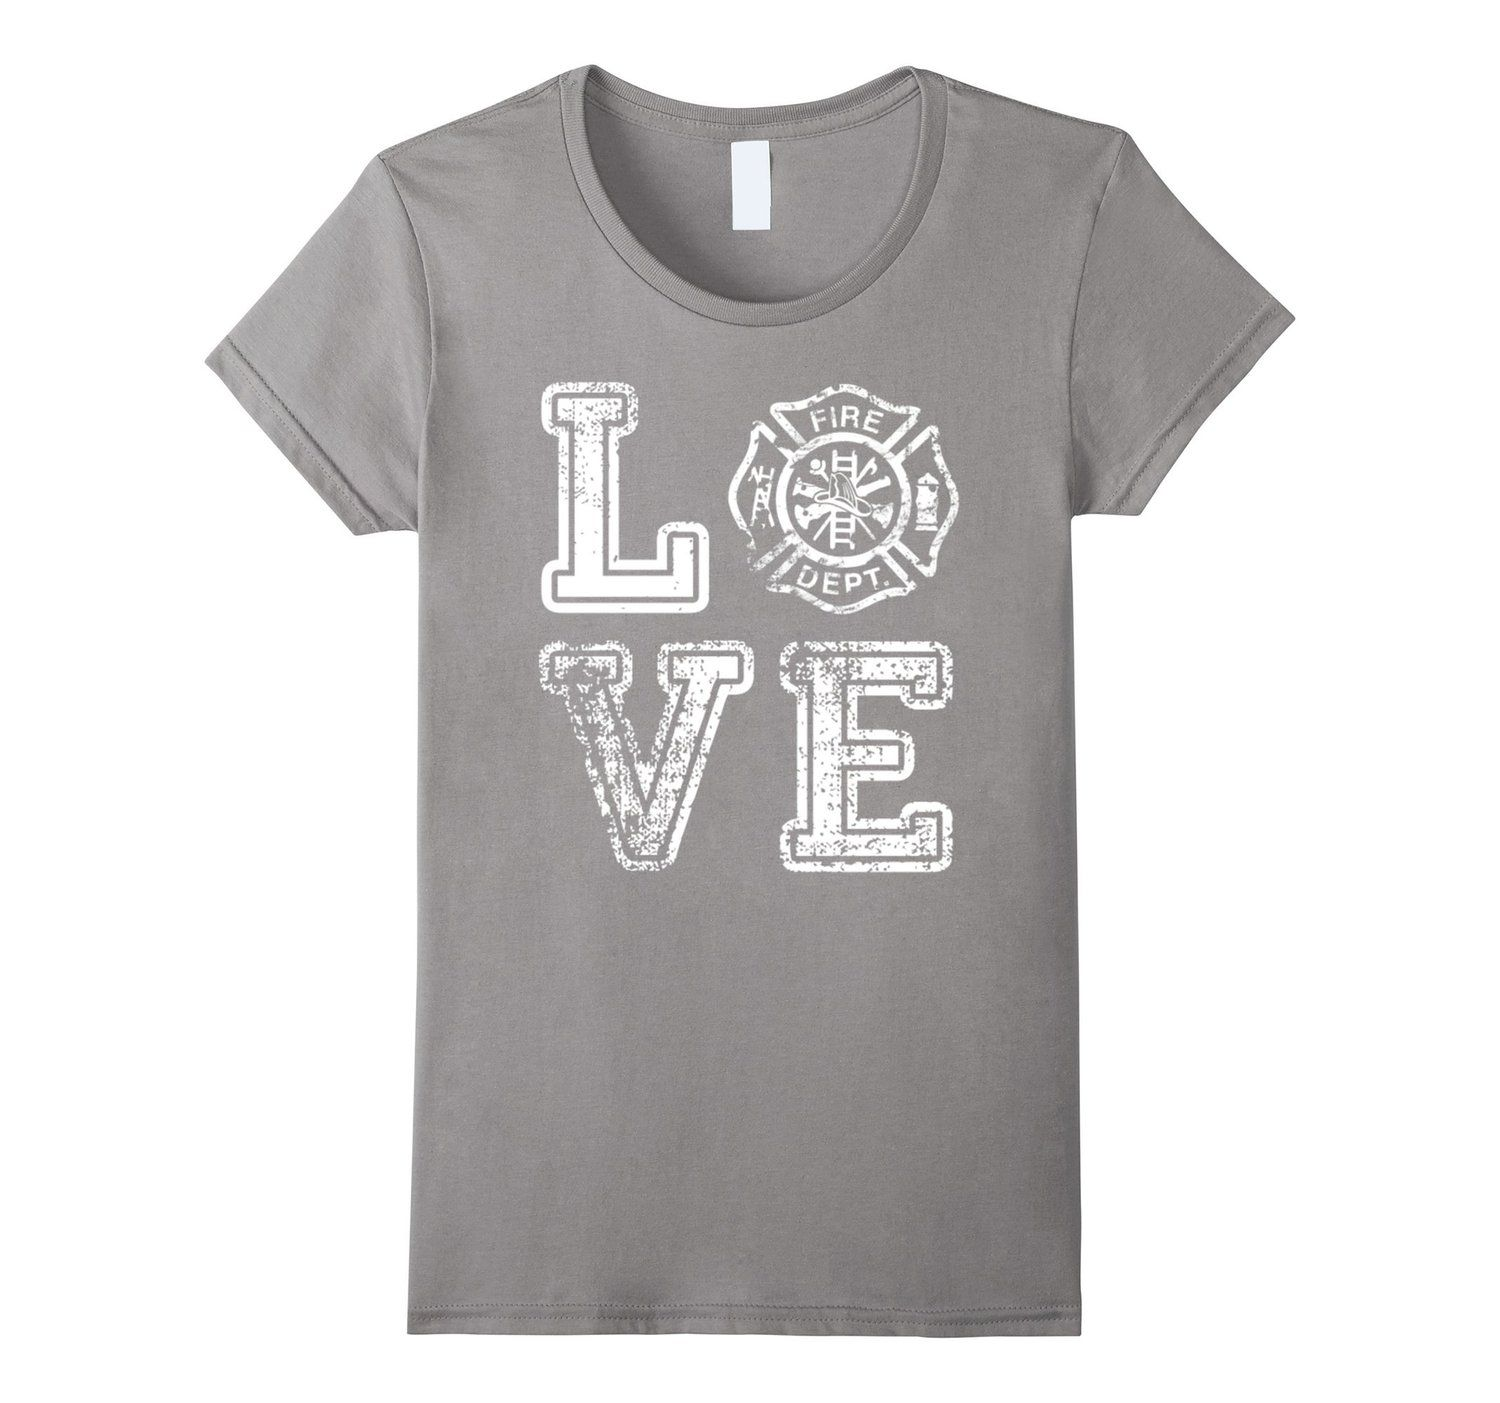 Love Fireman Firefighter Fire Department Tee Firefighter